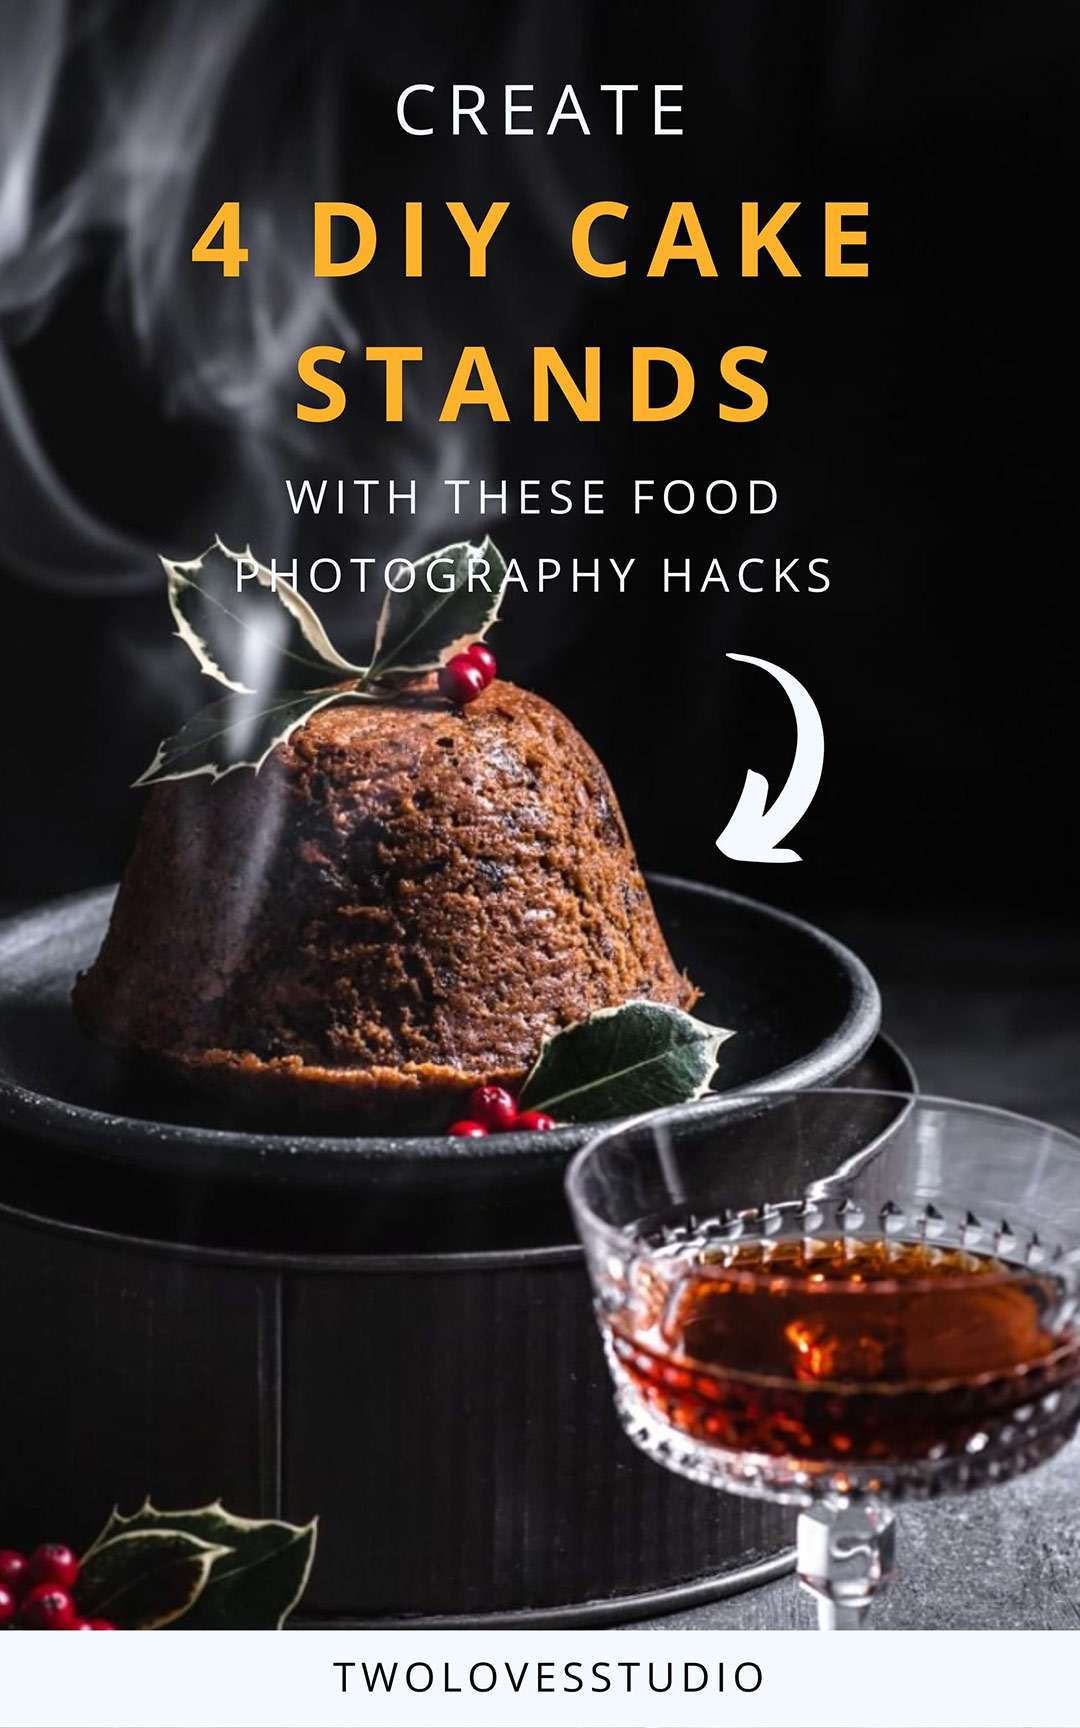 Christmas plum pudding on cake stand